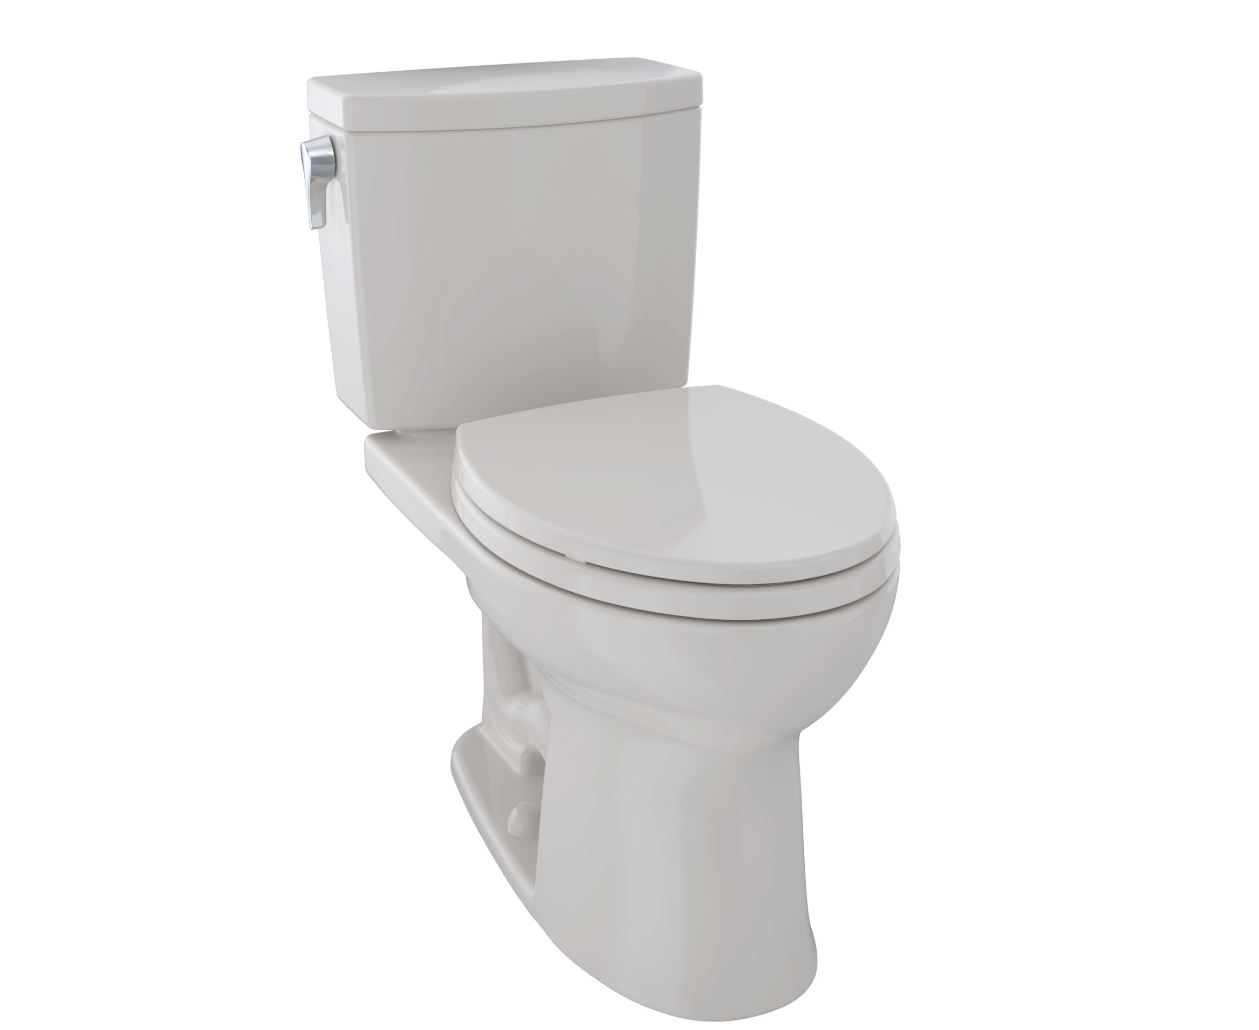 Toto CST454CUFG#12 Drake II 1G Two-Piece Toilet, Elongated Bowl, 1.0 GPF - Sedona Beige